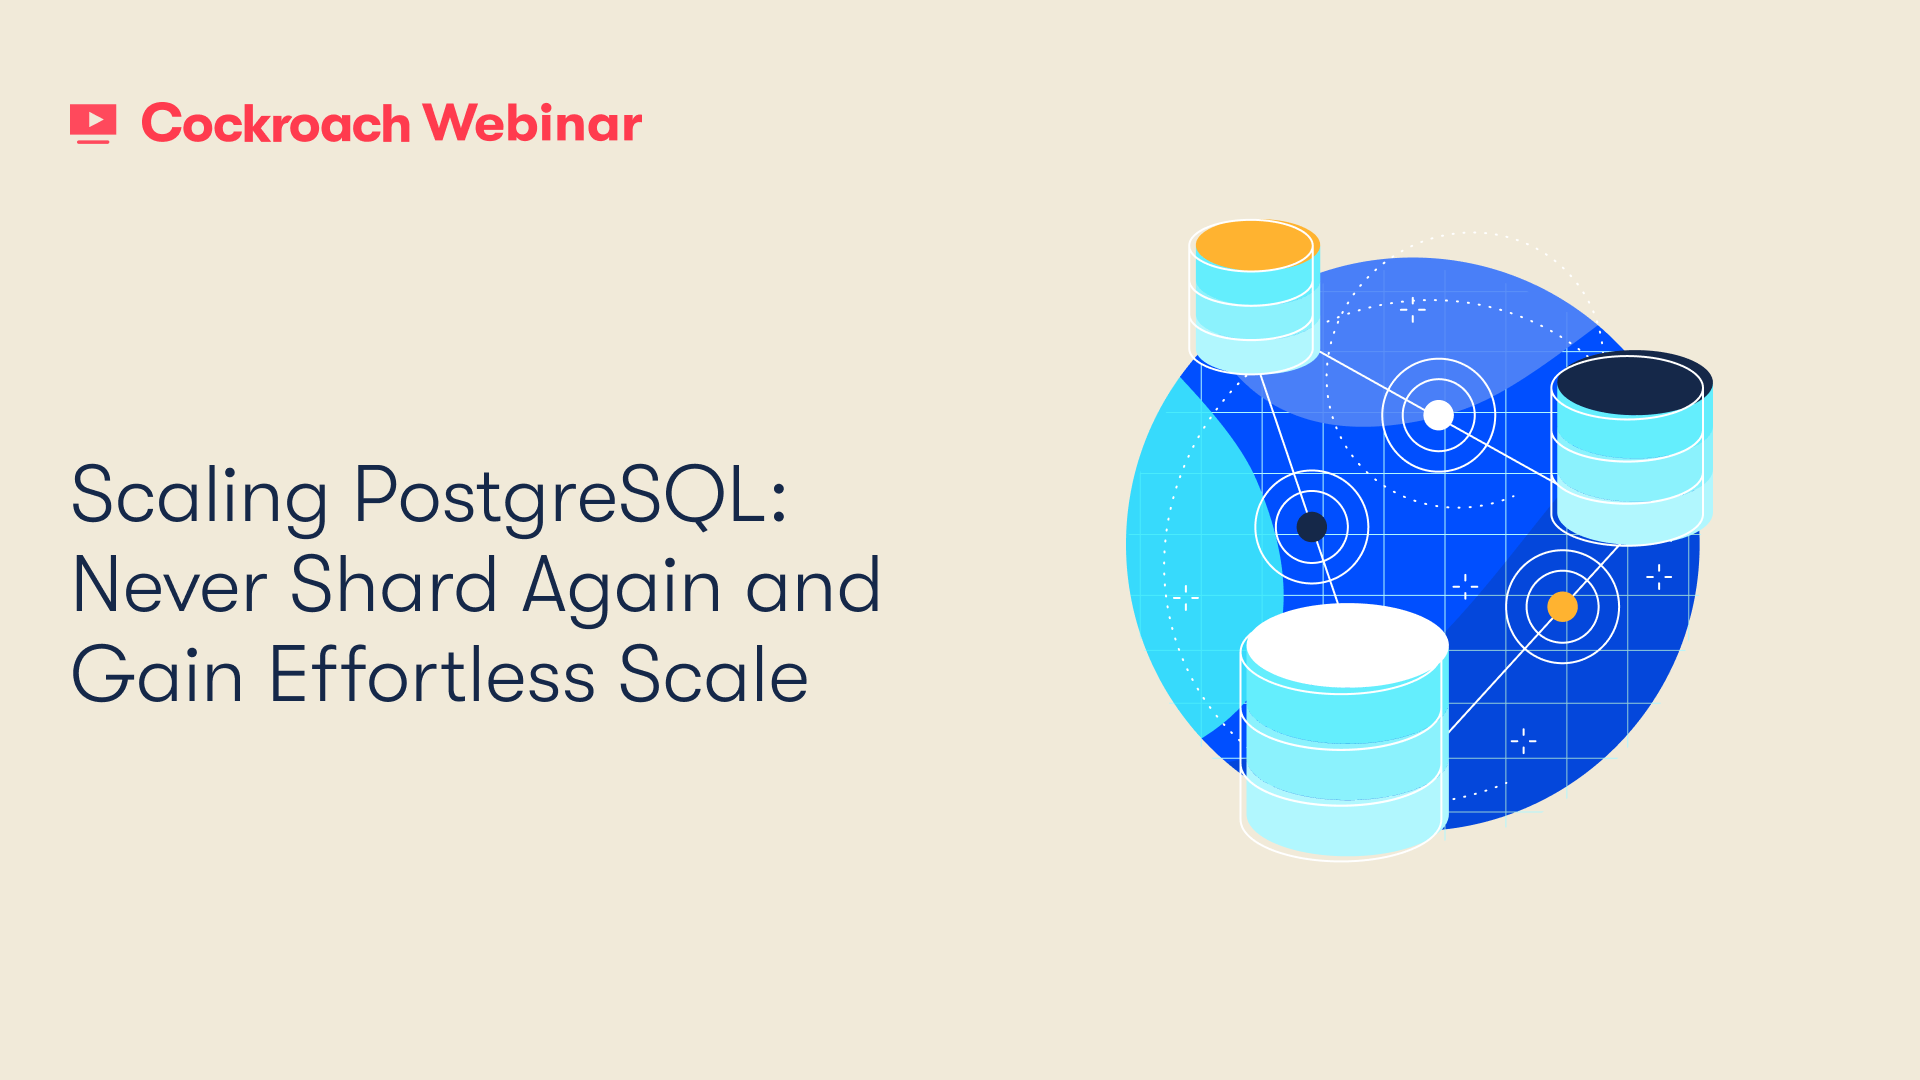 Scaling PostgreSQL: Never Shard Again and Gain Effortless Scale